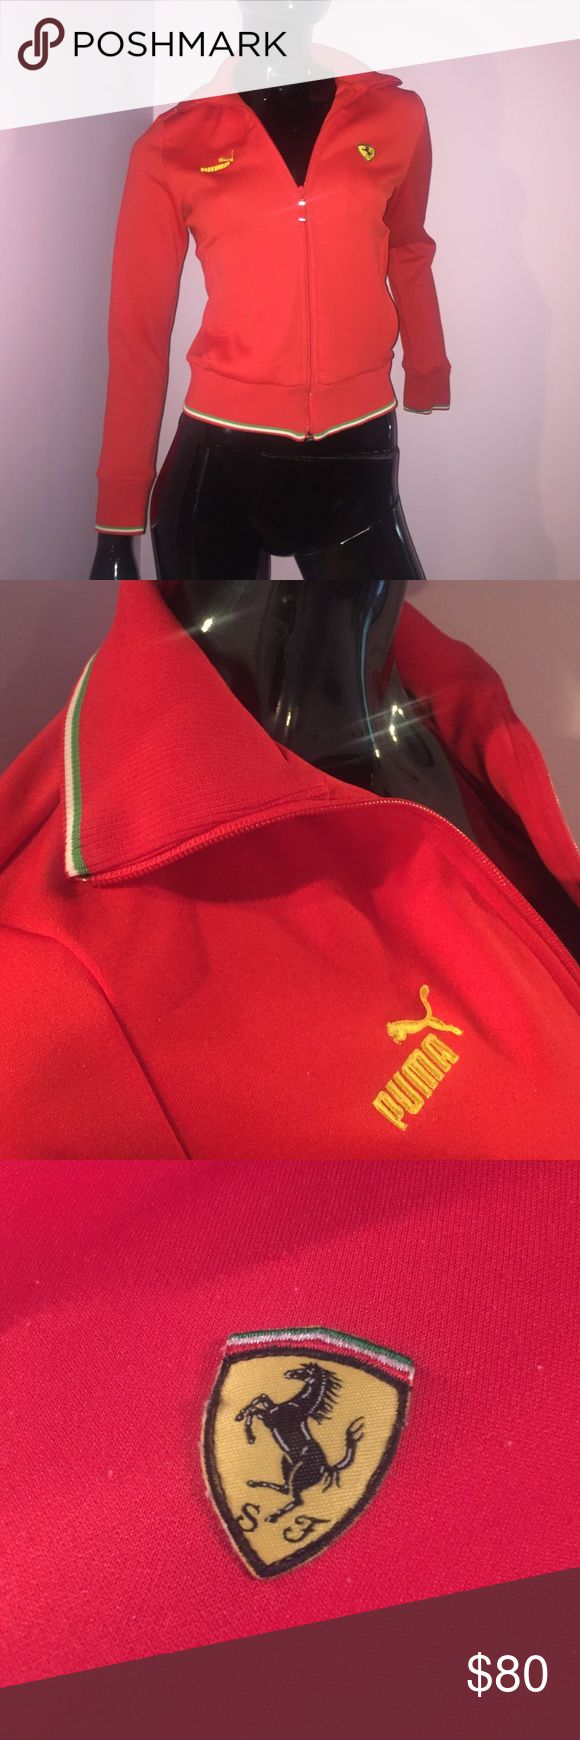 PUMA Ferrari Zip Up Red Sport Jacket 🔥 From the Ferrari store at the Wynn Hotel in Las Vegas this Puma Ferrari jacket is in great condition. As always our items are always authentic! We are a consignment store located one block off of the Las Vegas Strip! Follow us on Instagram for videos 💜 DayAndNightBoutique 💜Want more photos or have a question? 👉🏻 dayandnightlv @ G M a i l . C o m 💜😉✨ Puma Jackets & Coats